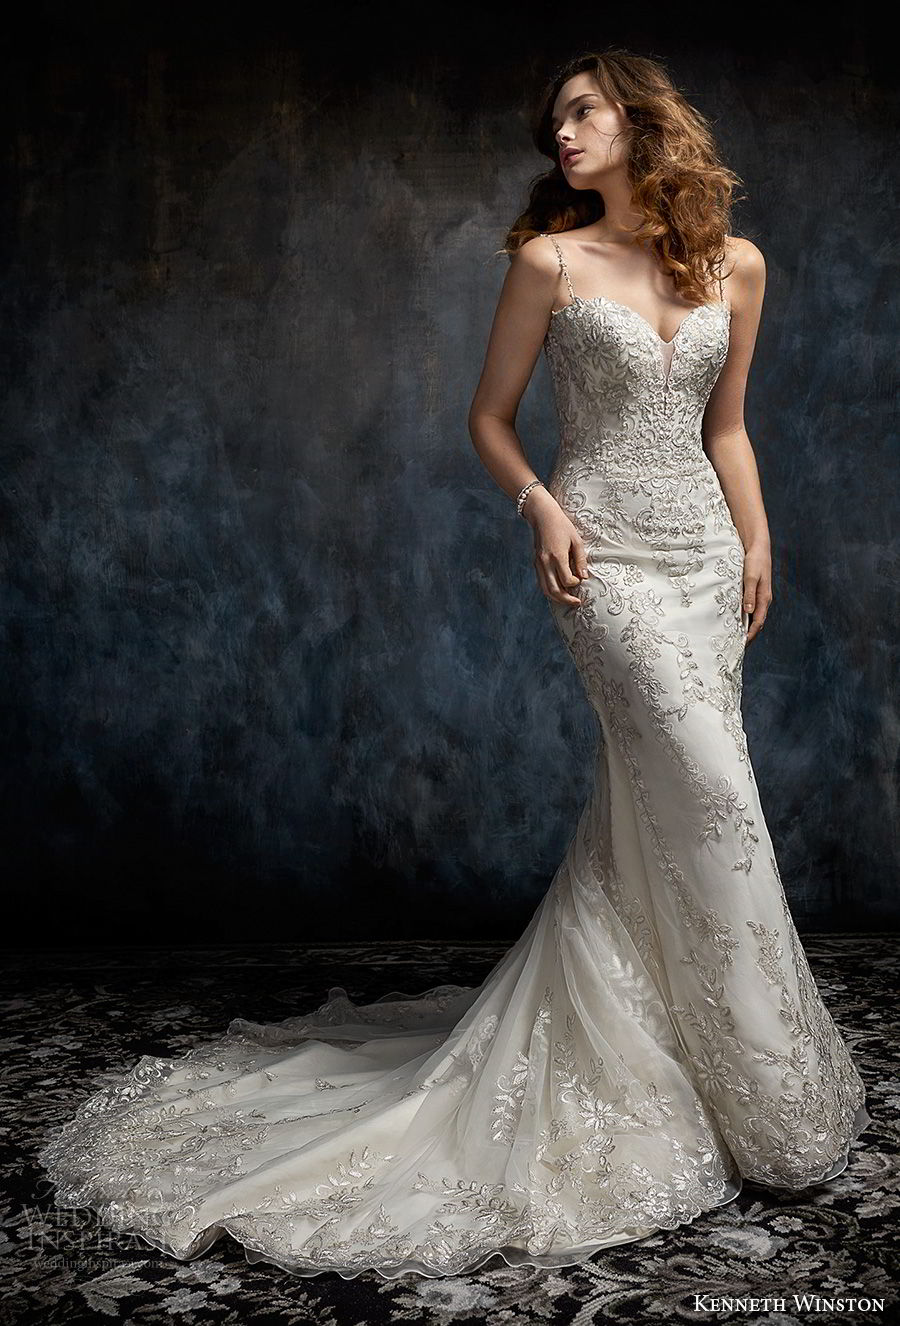 kenneth winston fall 2017 bridal sleeveless spaghetti strap sweetheart neckline heavily embellished bodice elegant fit and flare sheath wedding dress low open back chapel train (36) mv